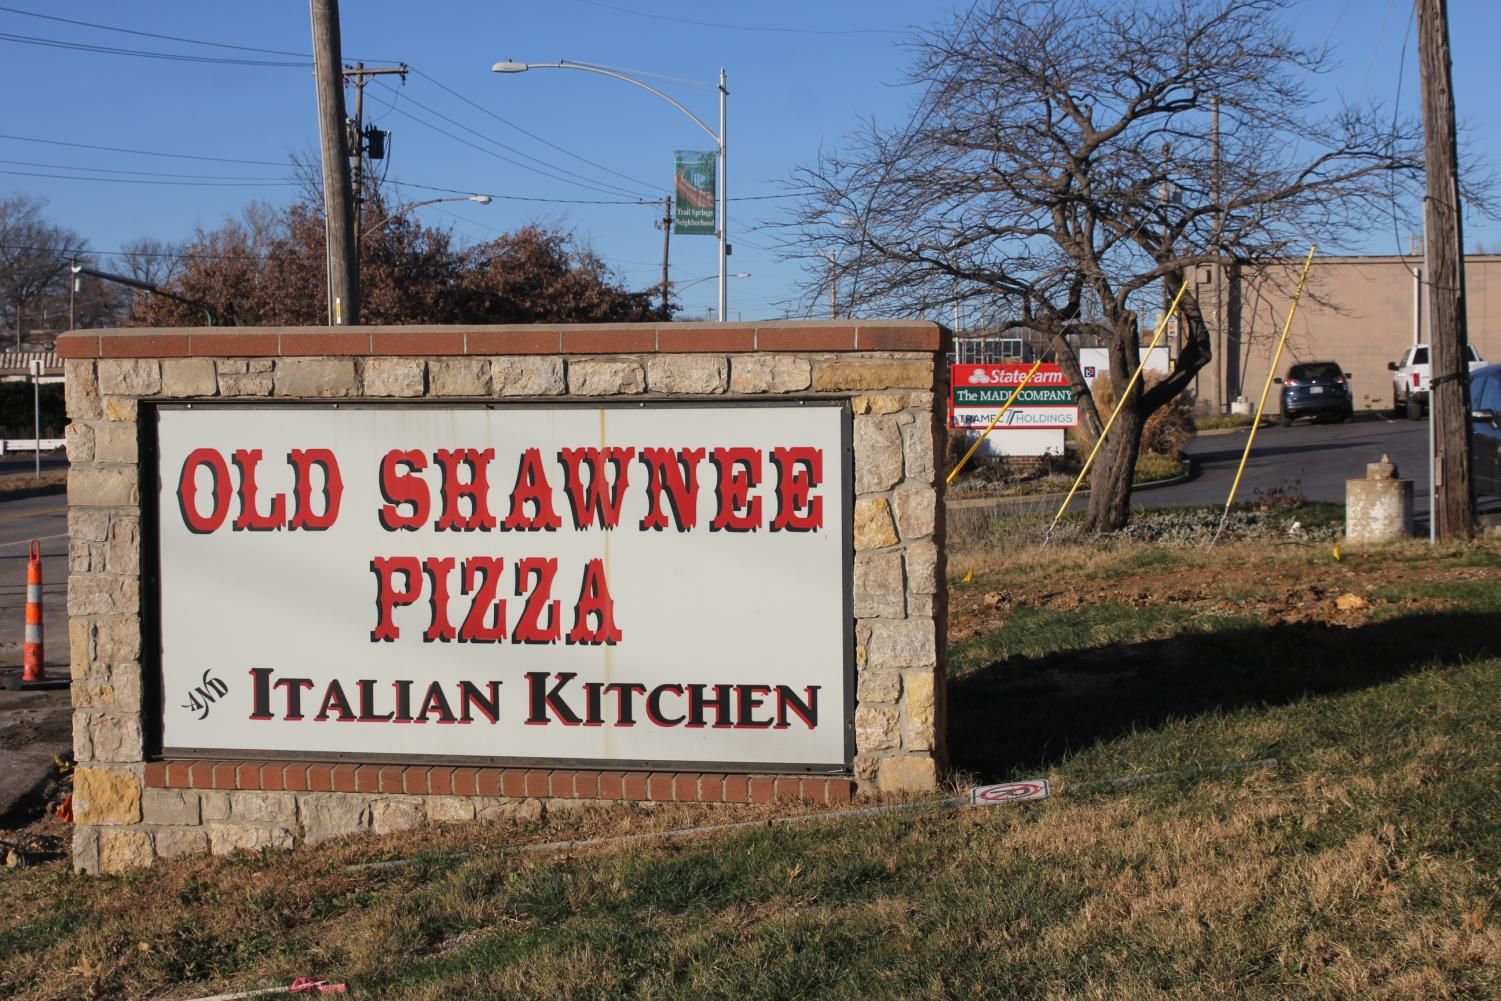 Located at 6000 Roger Rd in Shawnee, Old Shawnee Pizza started back in 1969 and has since opened a second location in Lenexa.